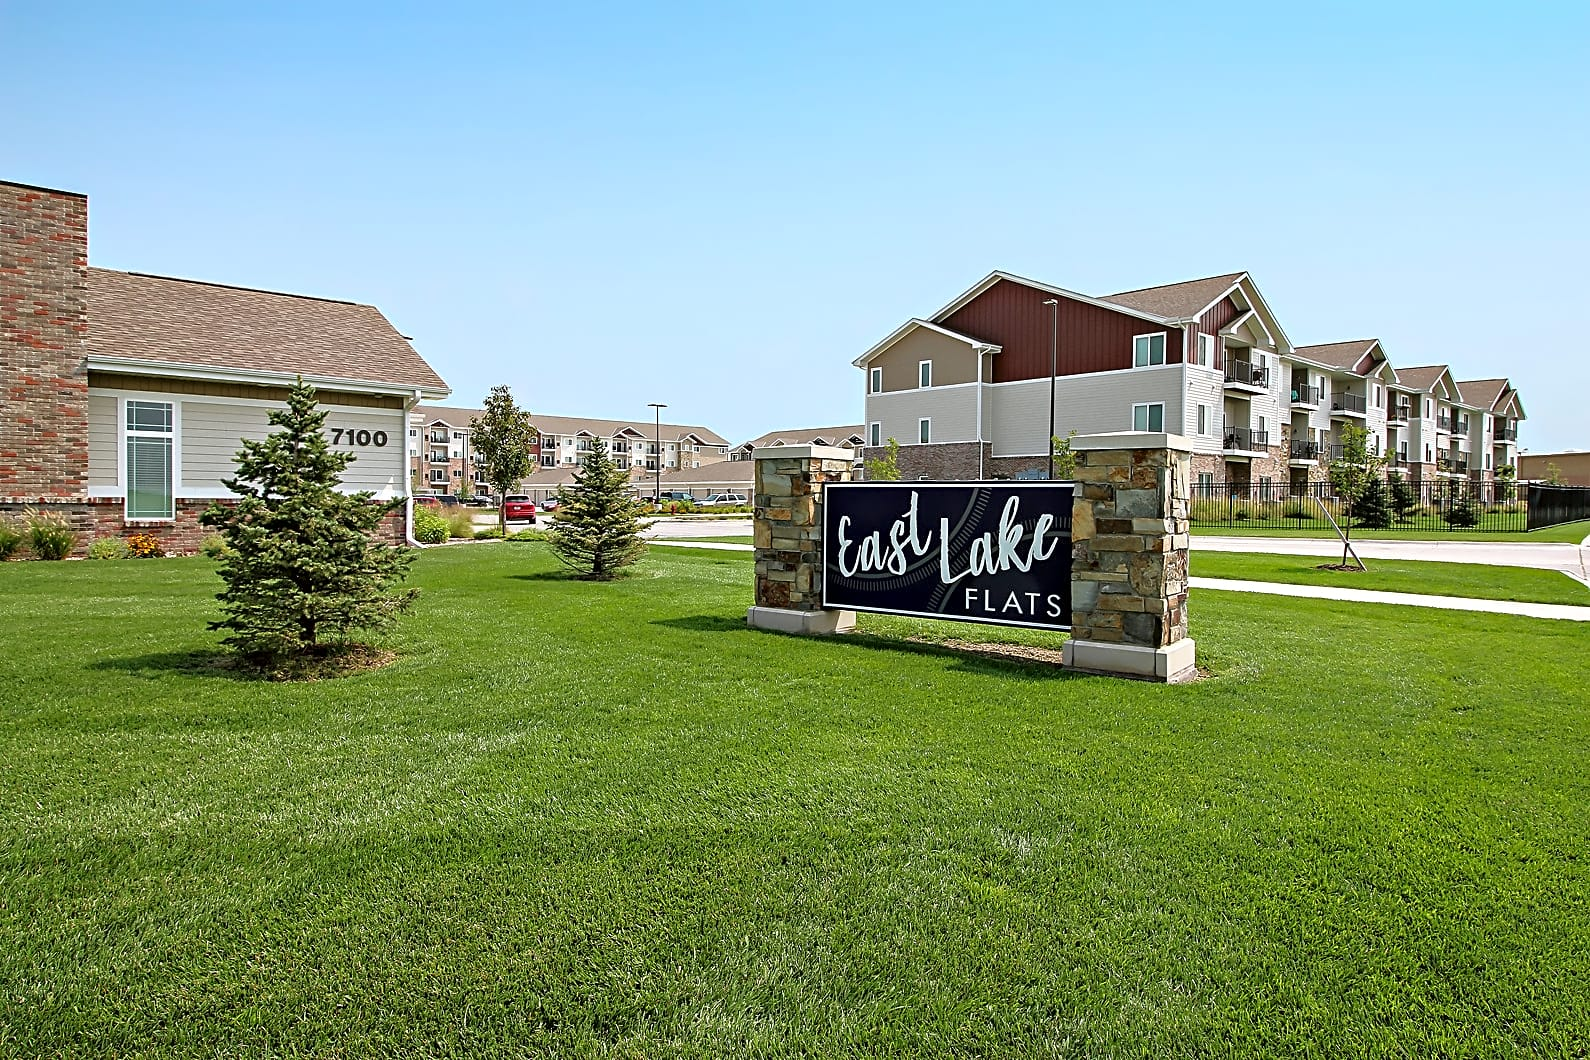 Apartments Near University of Nebraska East Lake Flats for University of Nebraska - Lincoln Students in Lincoln, NE